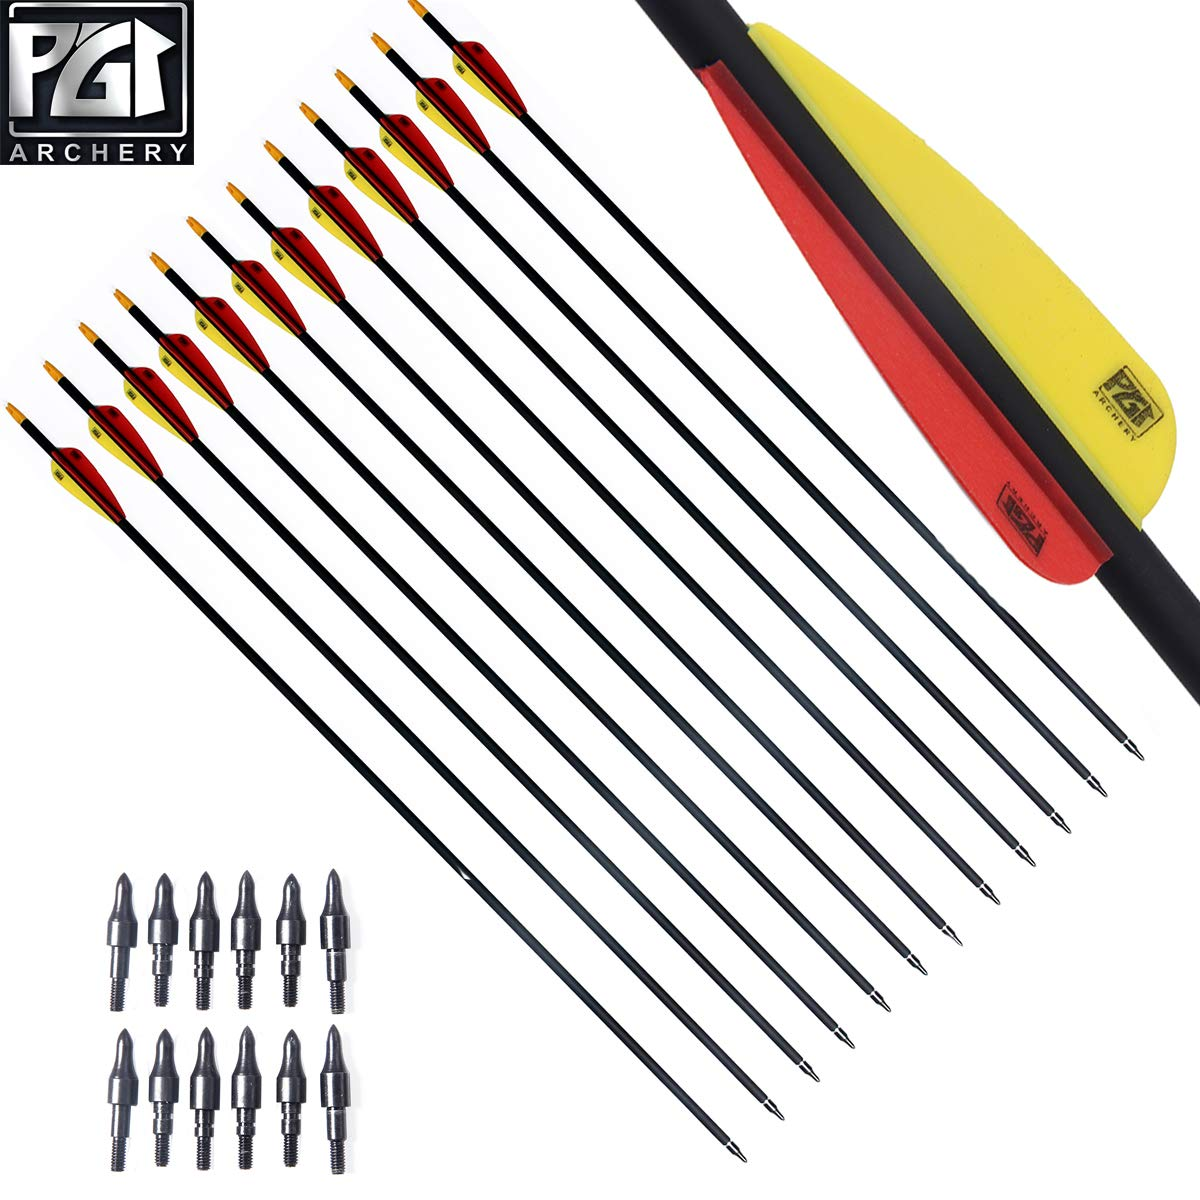 PG1ARCHERY Carbon Arrows, 30 Inch Targeting Arrows with Removable Tips 3'' Plastic Vanes Fletching for Archery Practice Hunting, 12 Pack Yellow Red